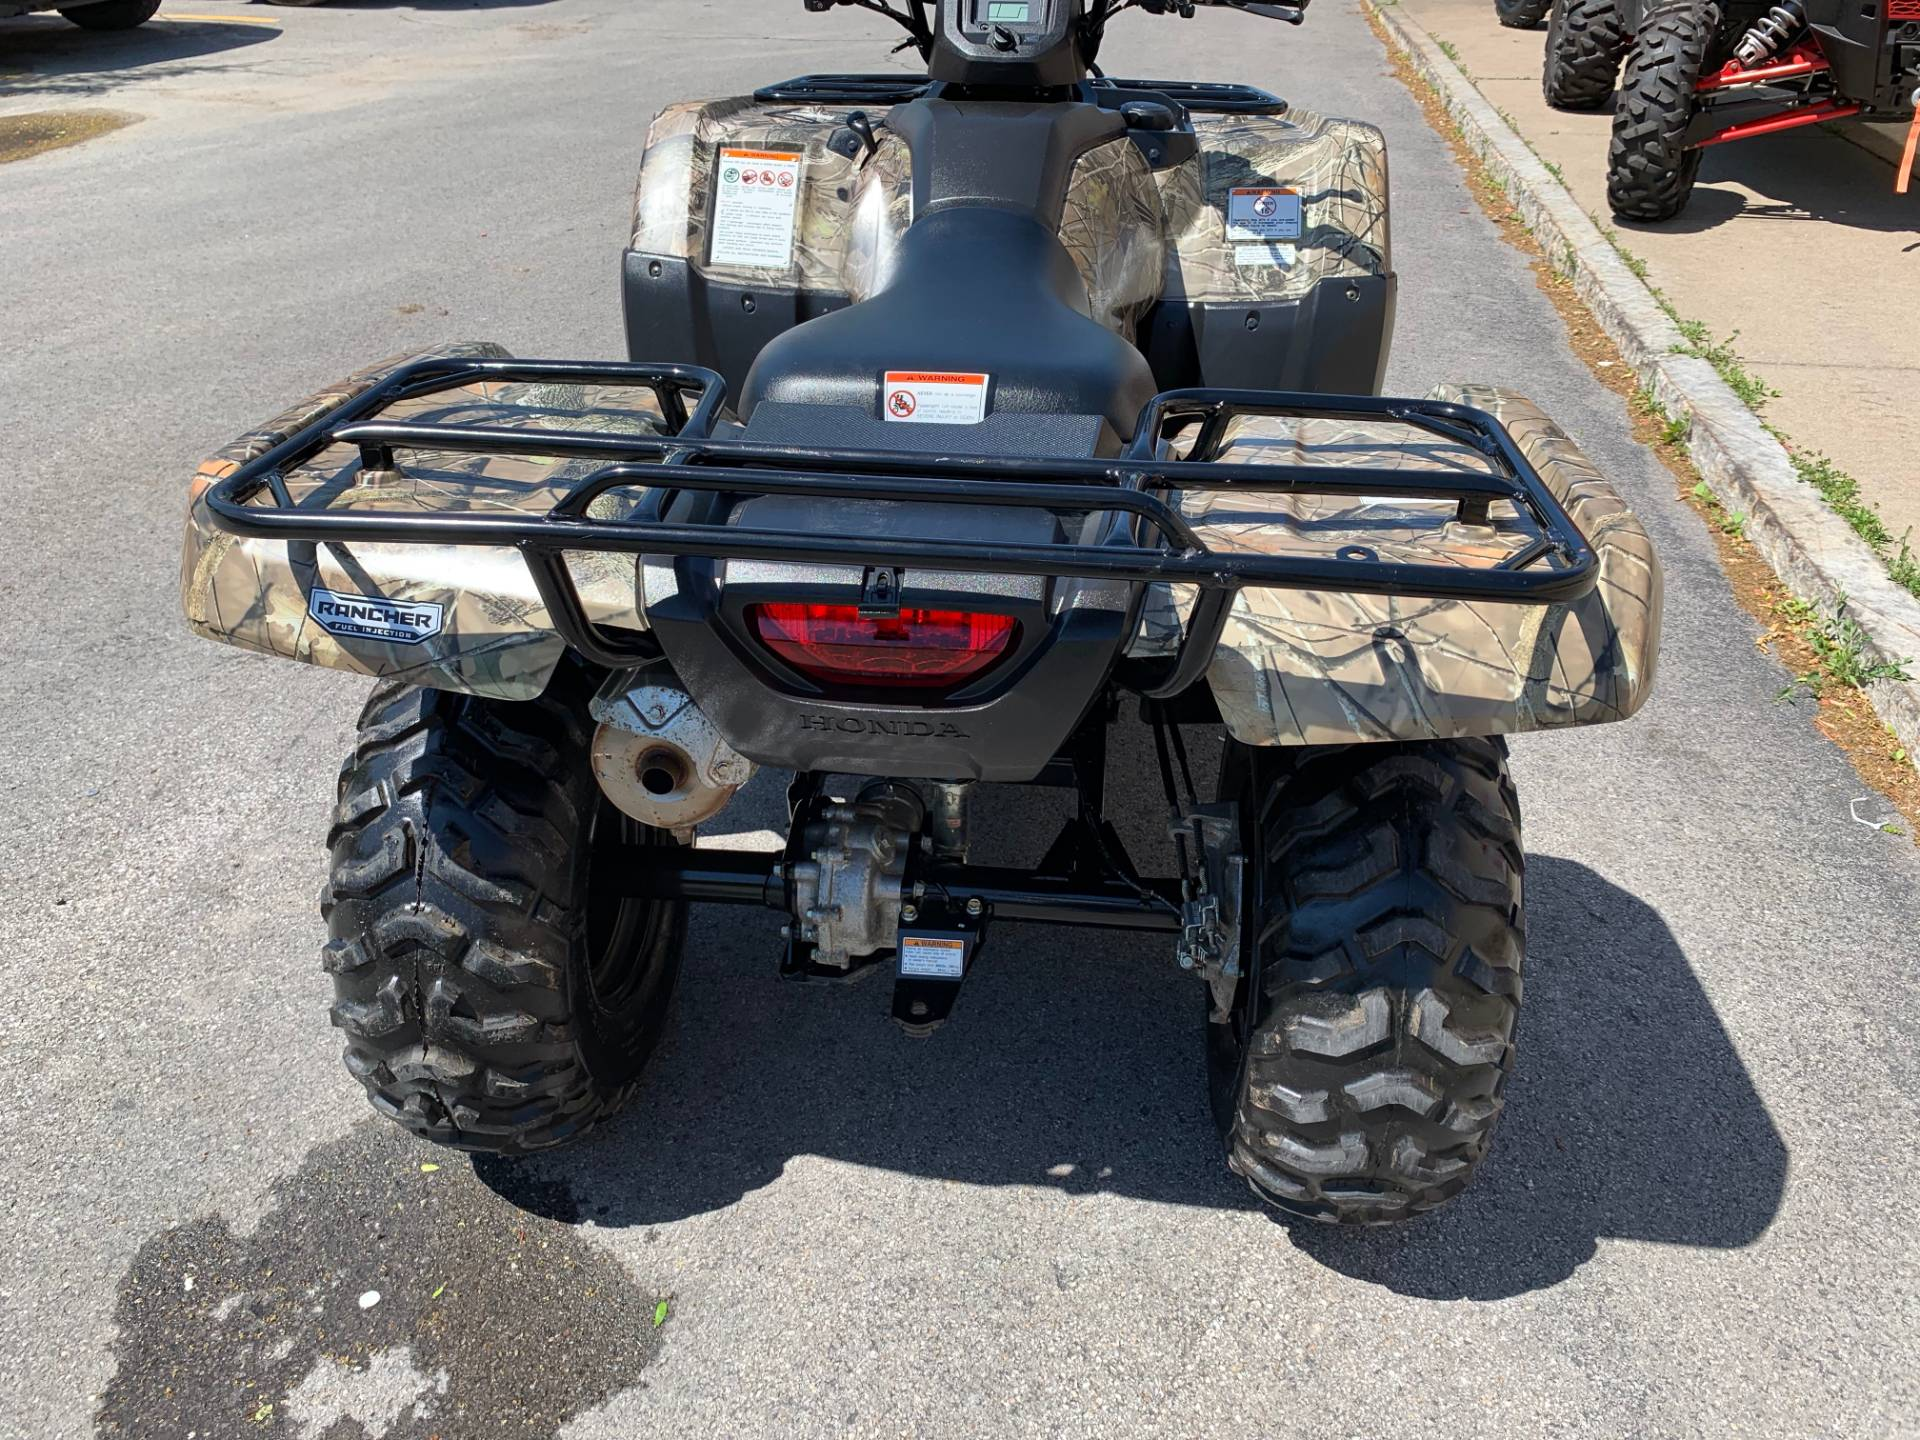 2017 Honda FourTrax Rancher 4x4 in Herkimer, New York - Photo 11